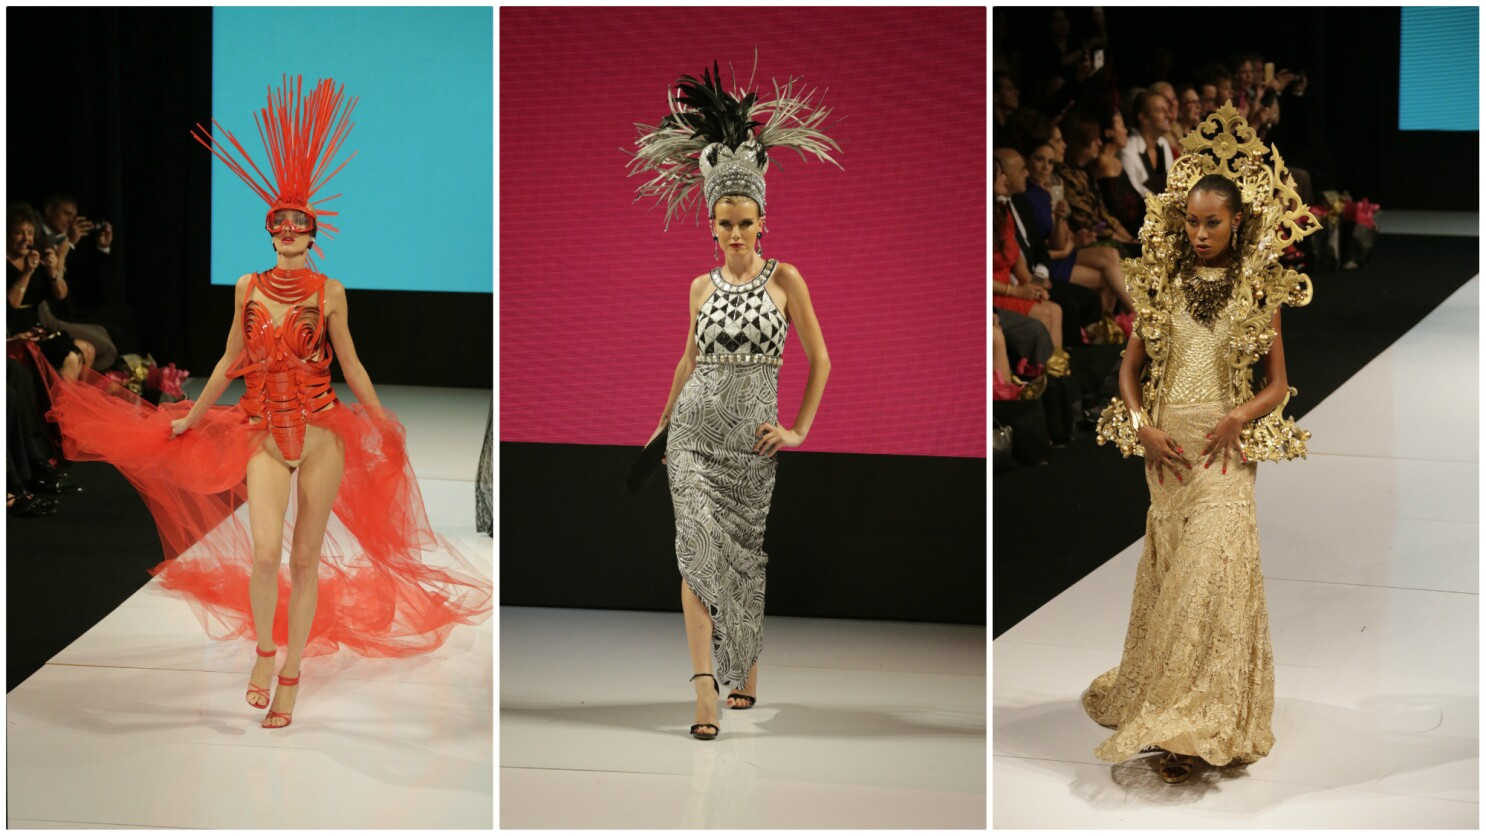 Sue Wong Kicks Off La Fashion Week With A Spiky Sexy And Over The The Top Collection Los Angeles Times